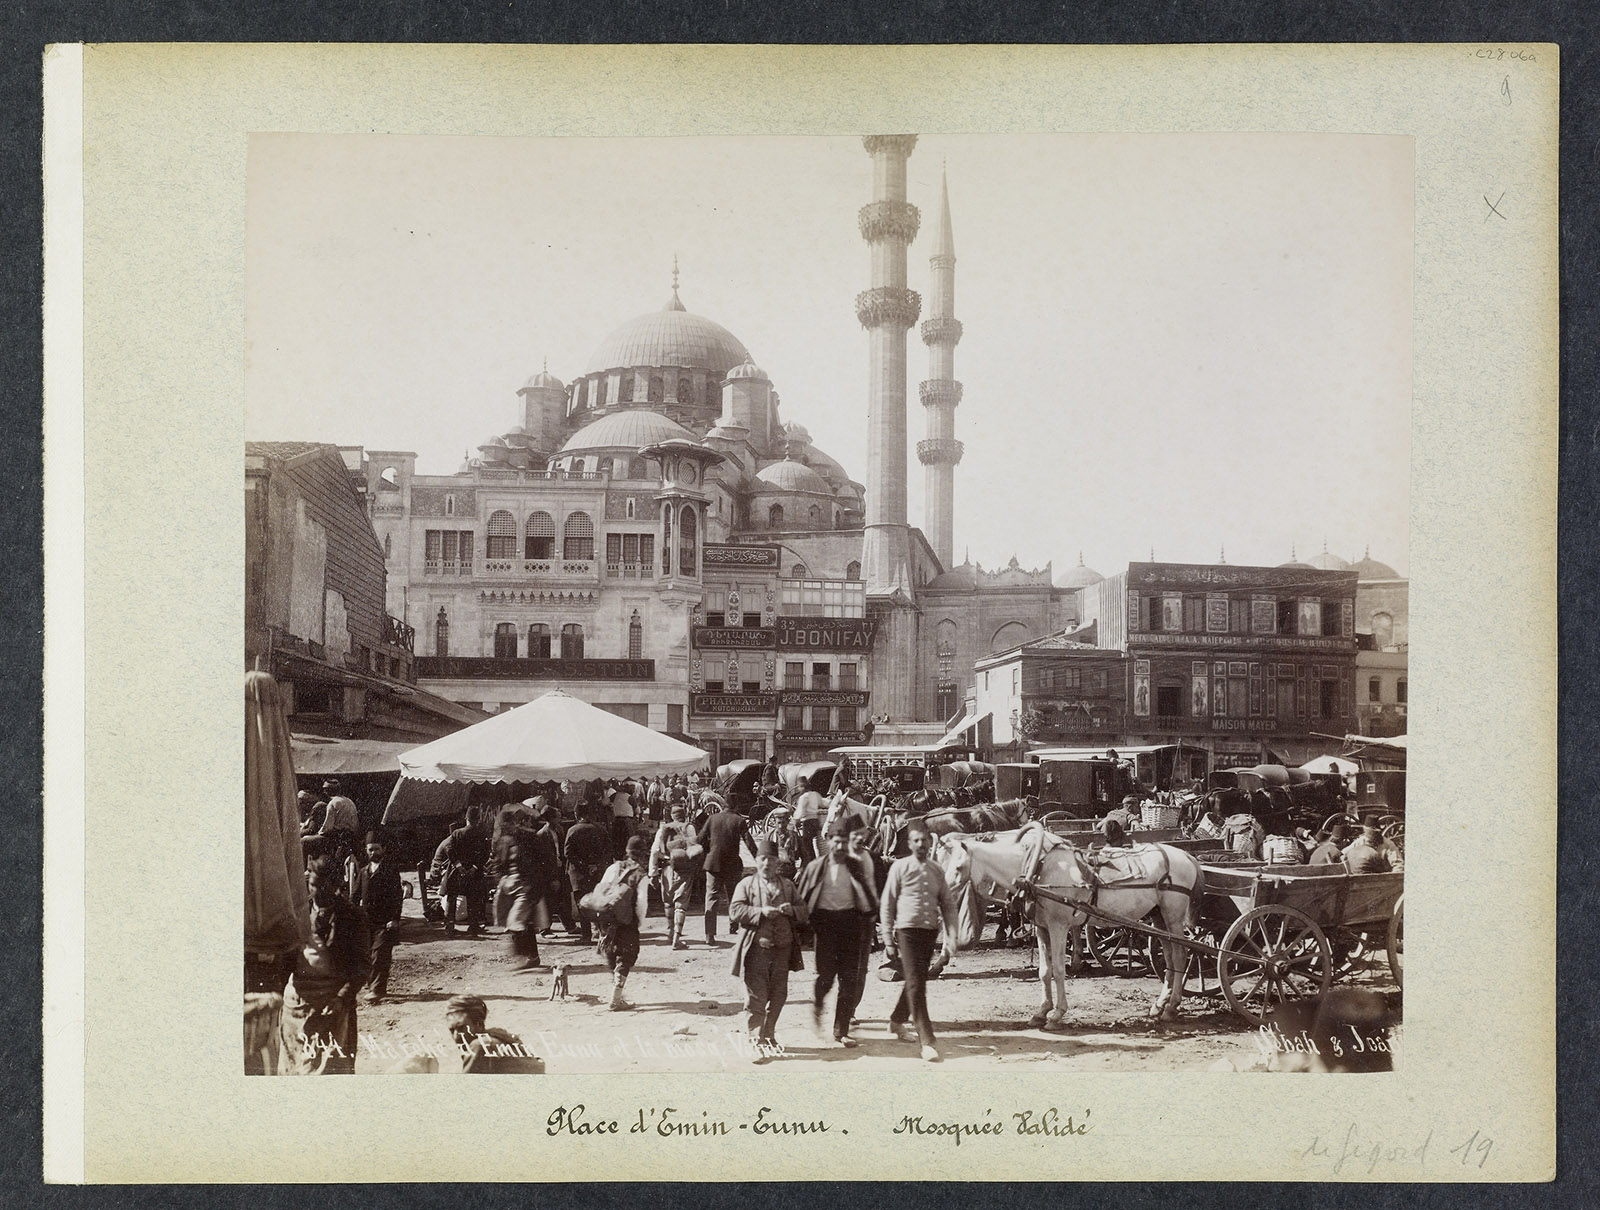 Giant Of Modern Photography At >> Ottoman Era Photographs Take On New Meaning In Their Digital Life